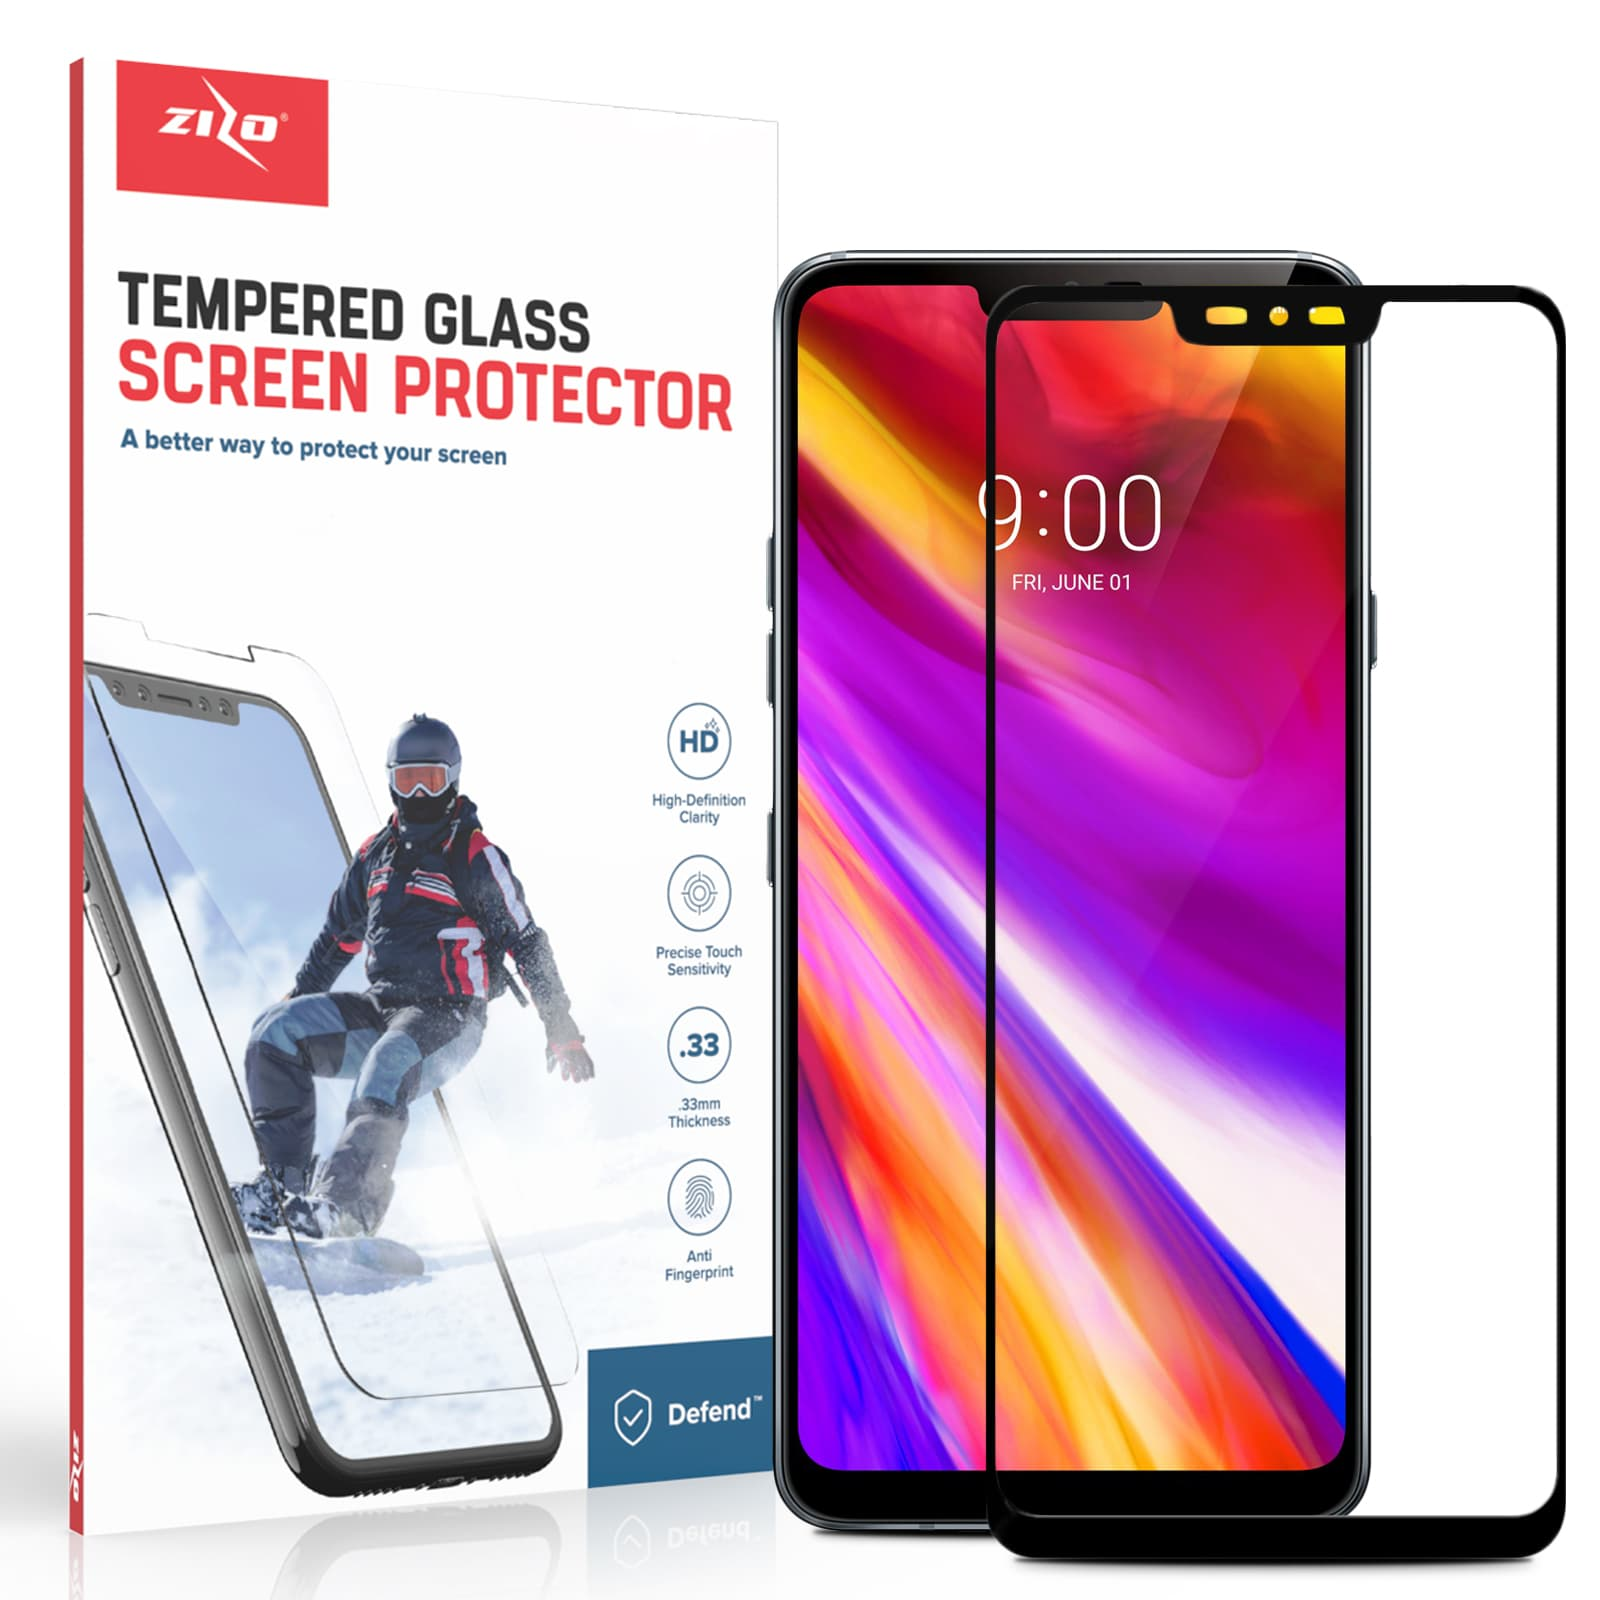 BLACK LG G7 THINQ FULL GLASS